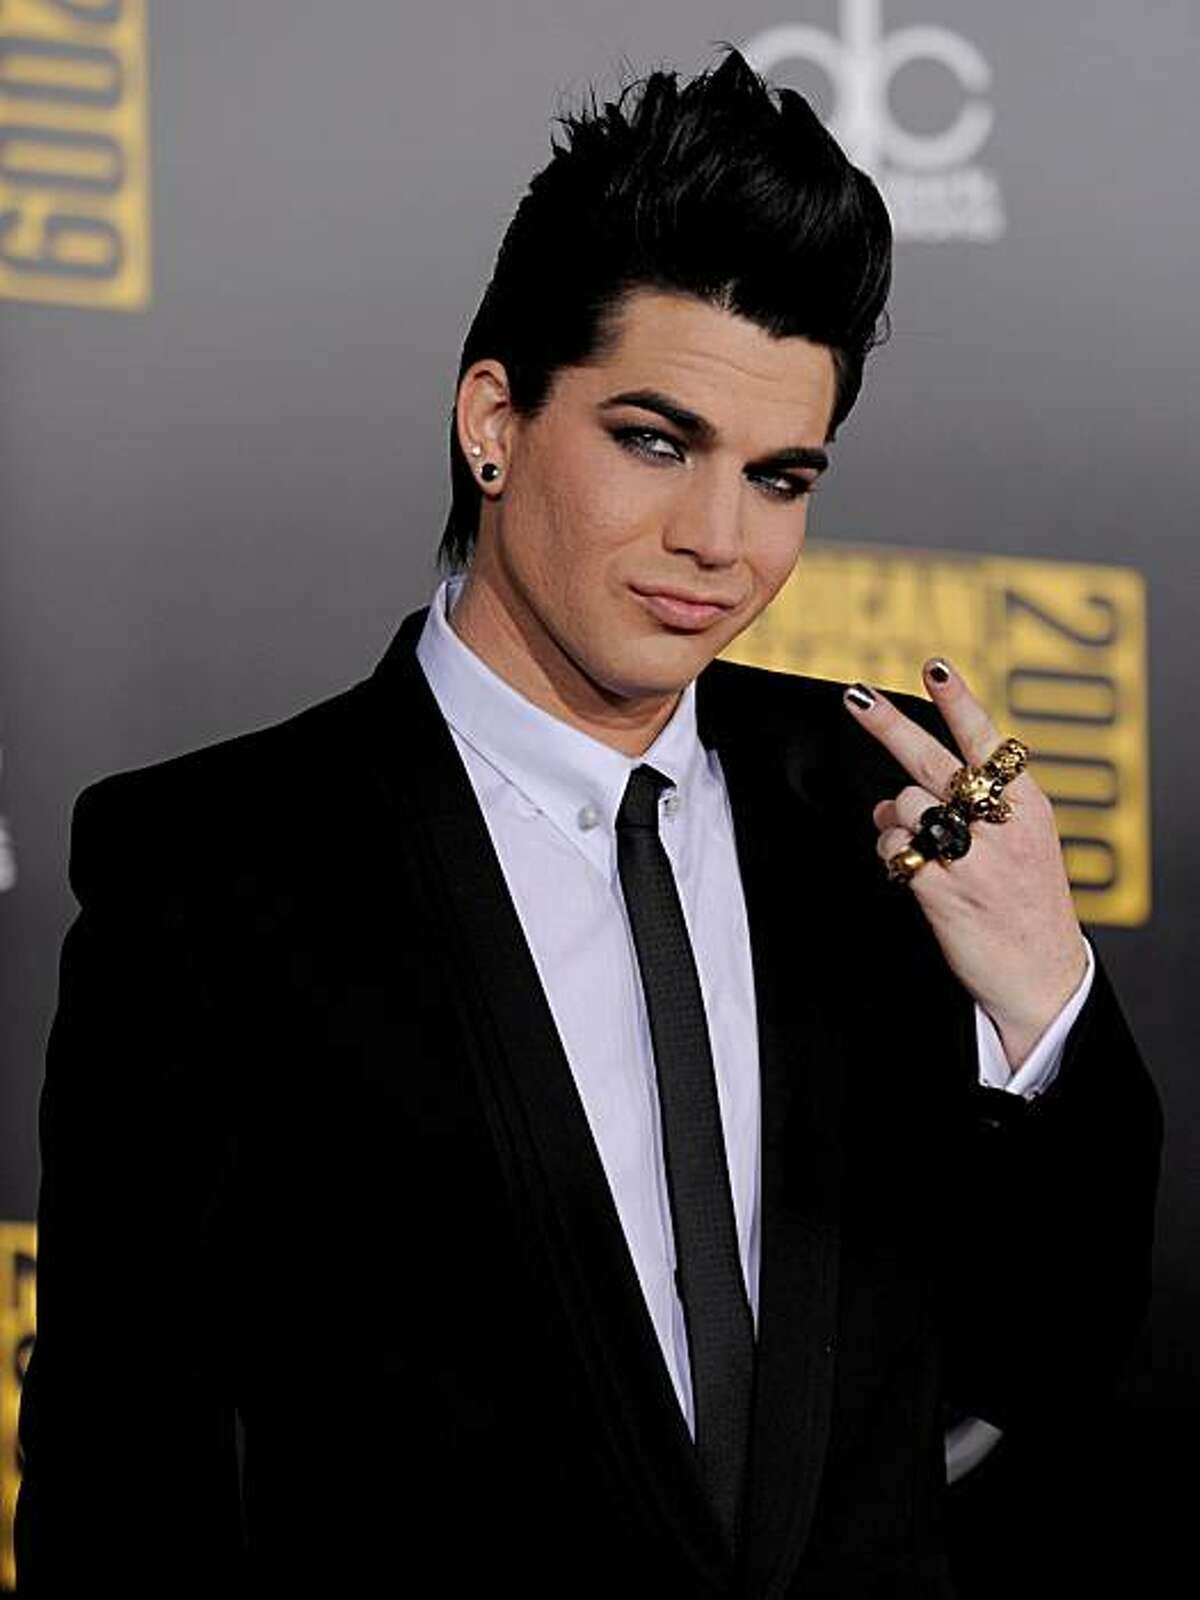 Singer Adam Lambert arrives at the 37th Annual American Music Awards on Sunday, Nov. 22, 2009, in Los Angeles.